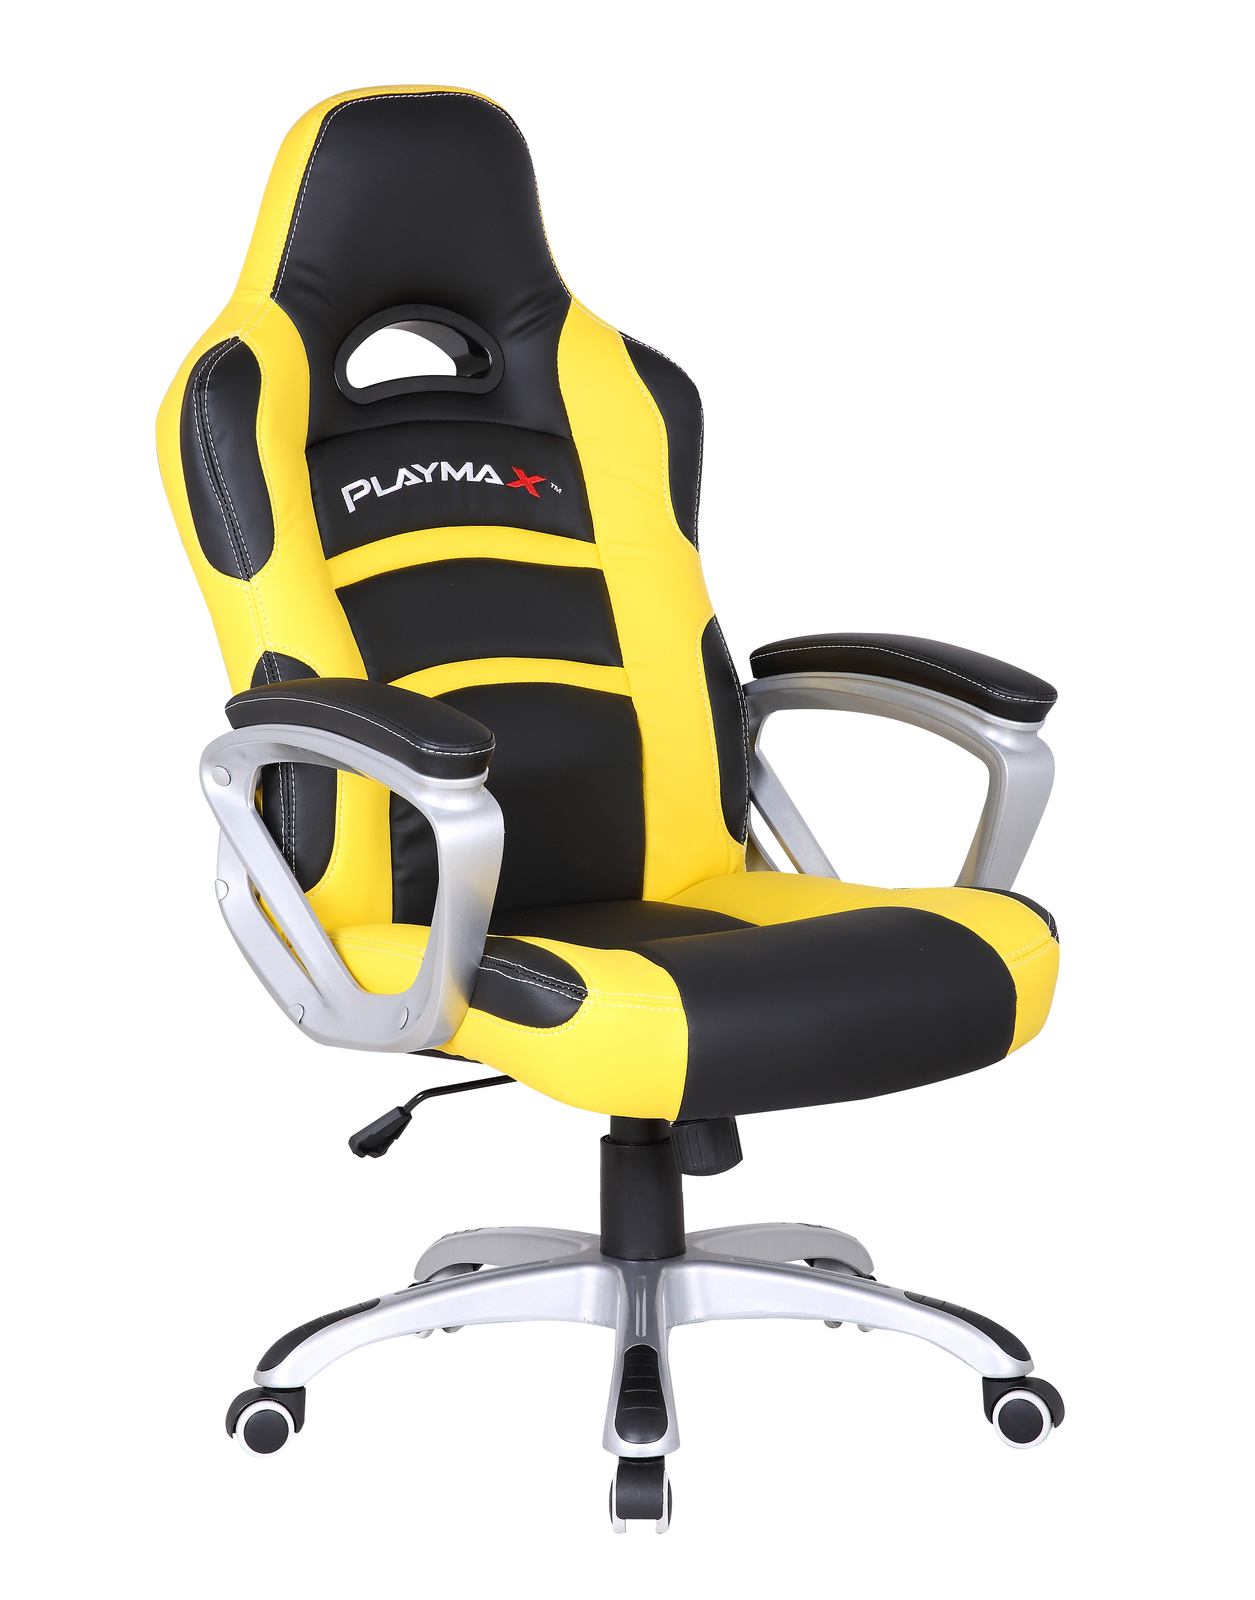 Playmax Gaming Chair Yellow and Black Buy Now